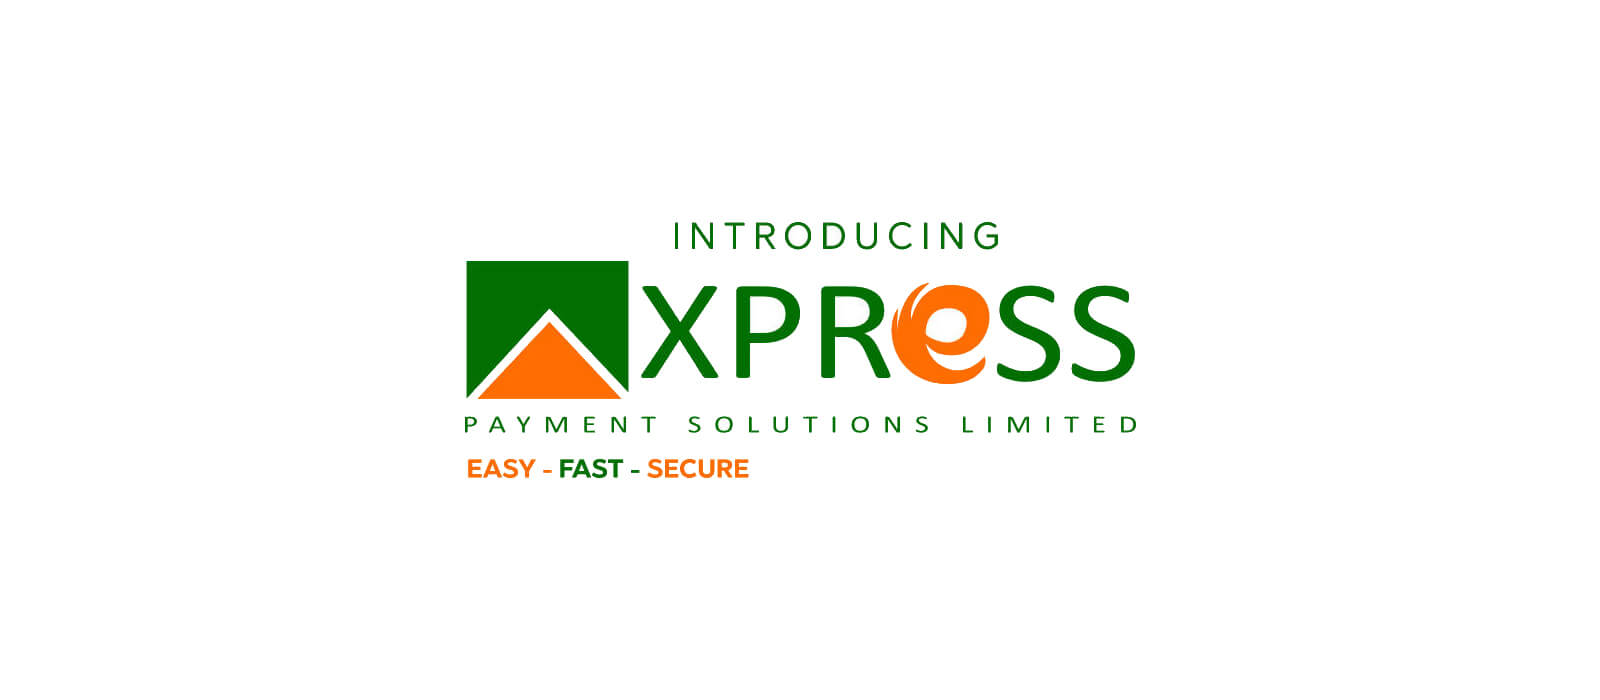 Xpress Payment deepens financial inclusion in rural areas